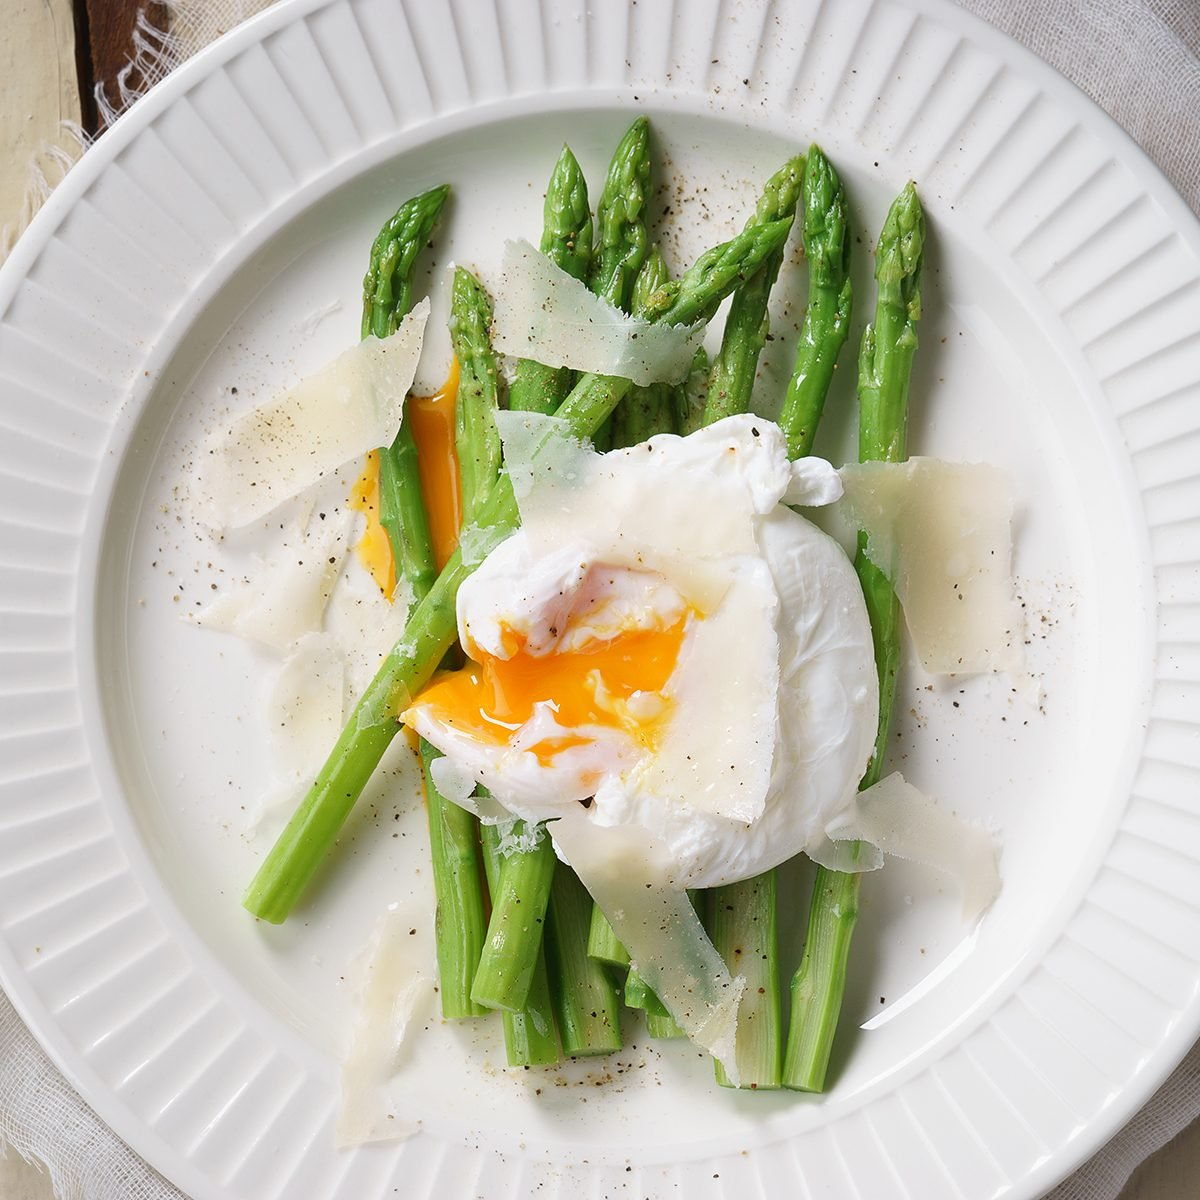 Asparagus salad with Poached Egg and parmesan cheese